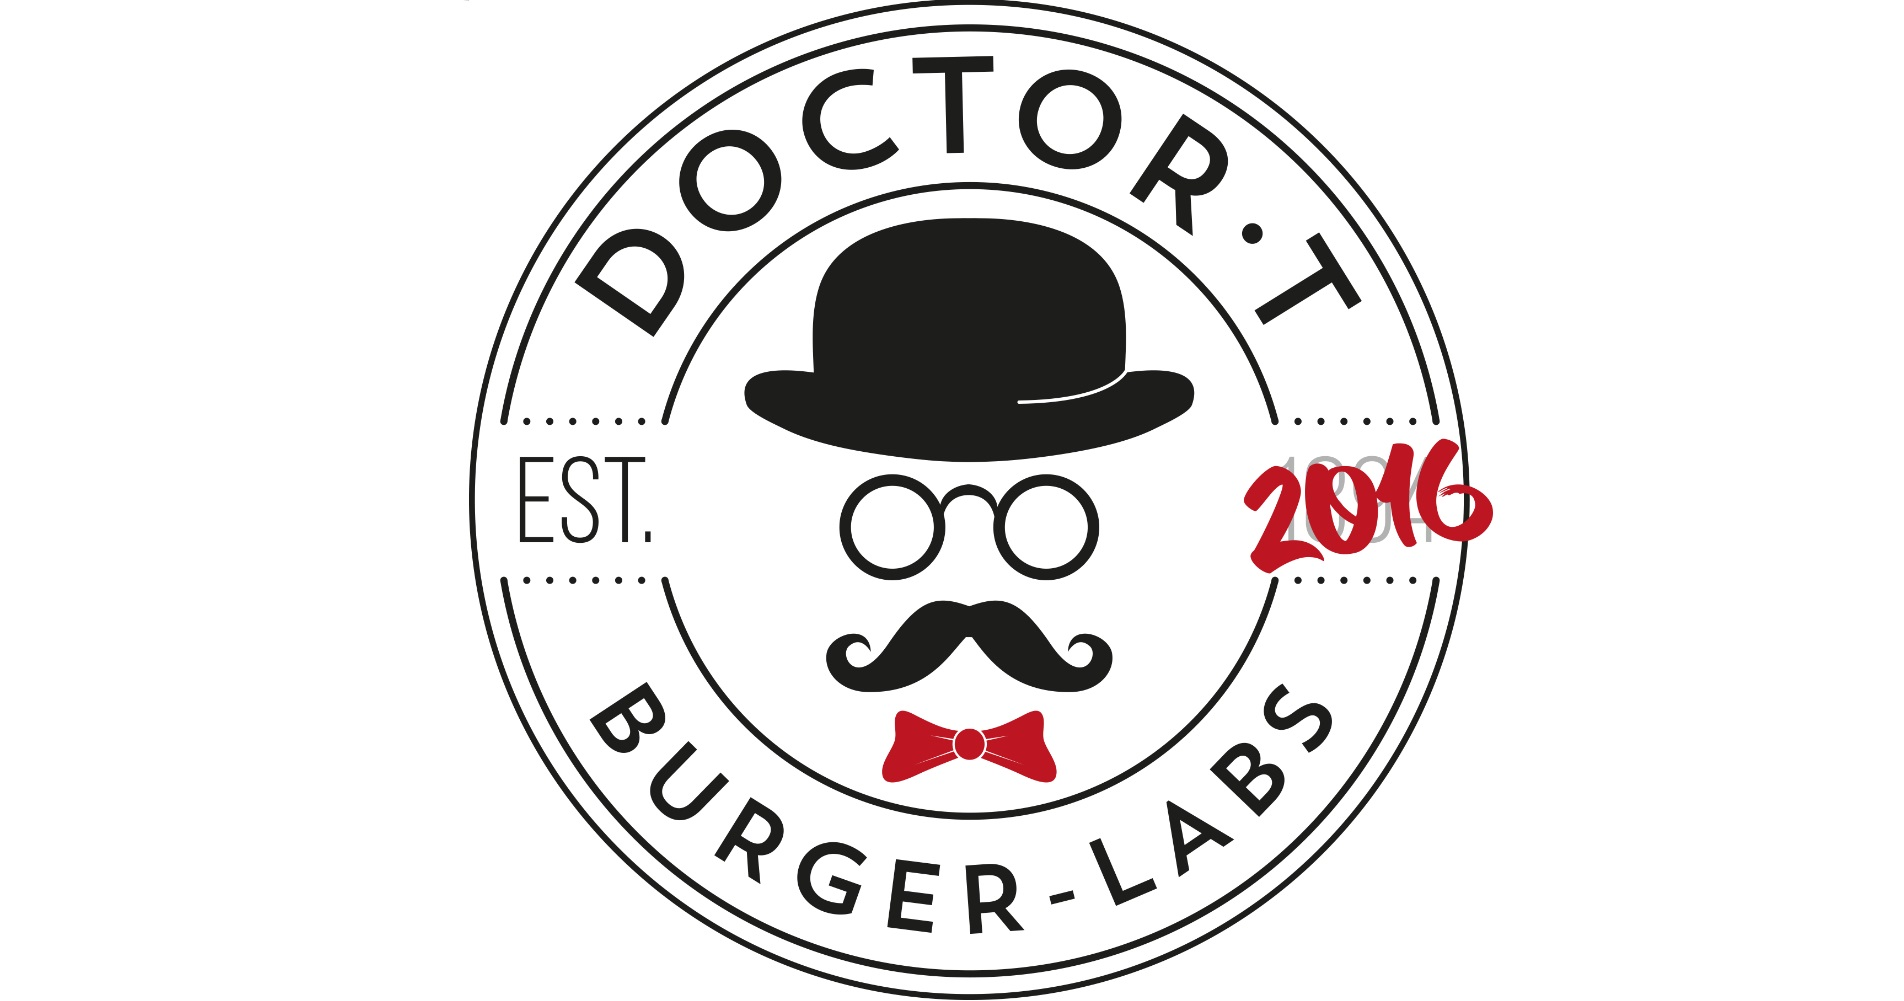 Amerikanische Restaurants Nrw Doctor T Burger Labs Huyssenalle 99 Essen Doctort De